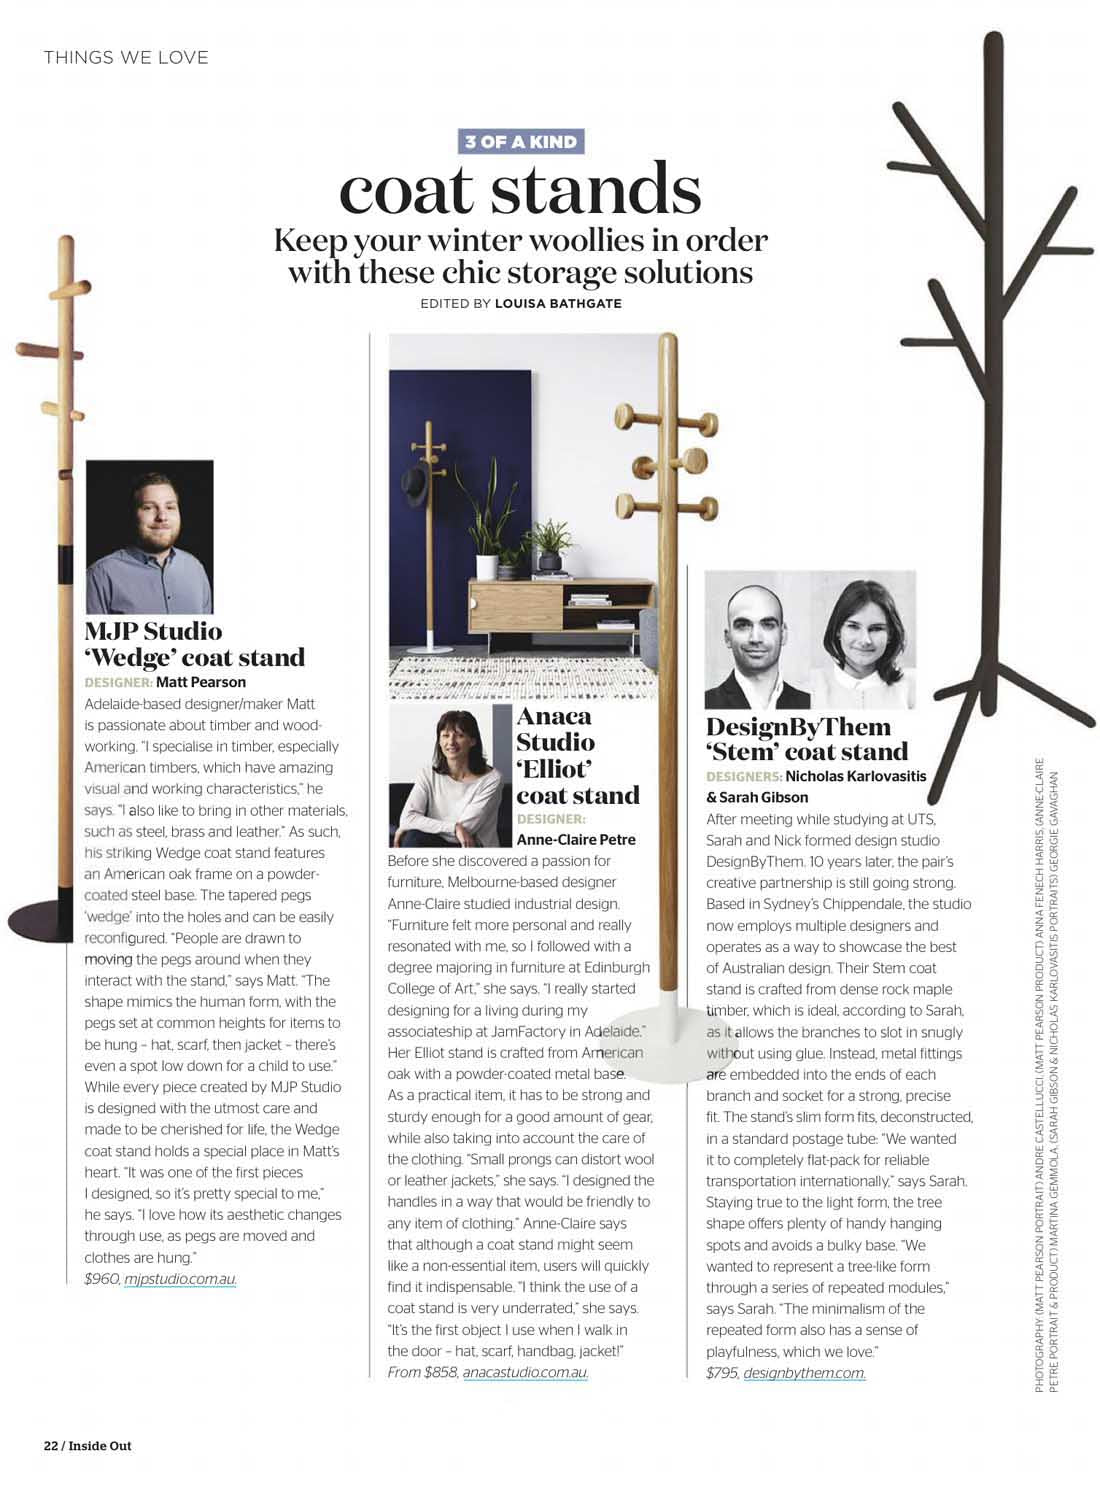 Inside Out Magazine | Stem Coat Stand